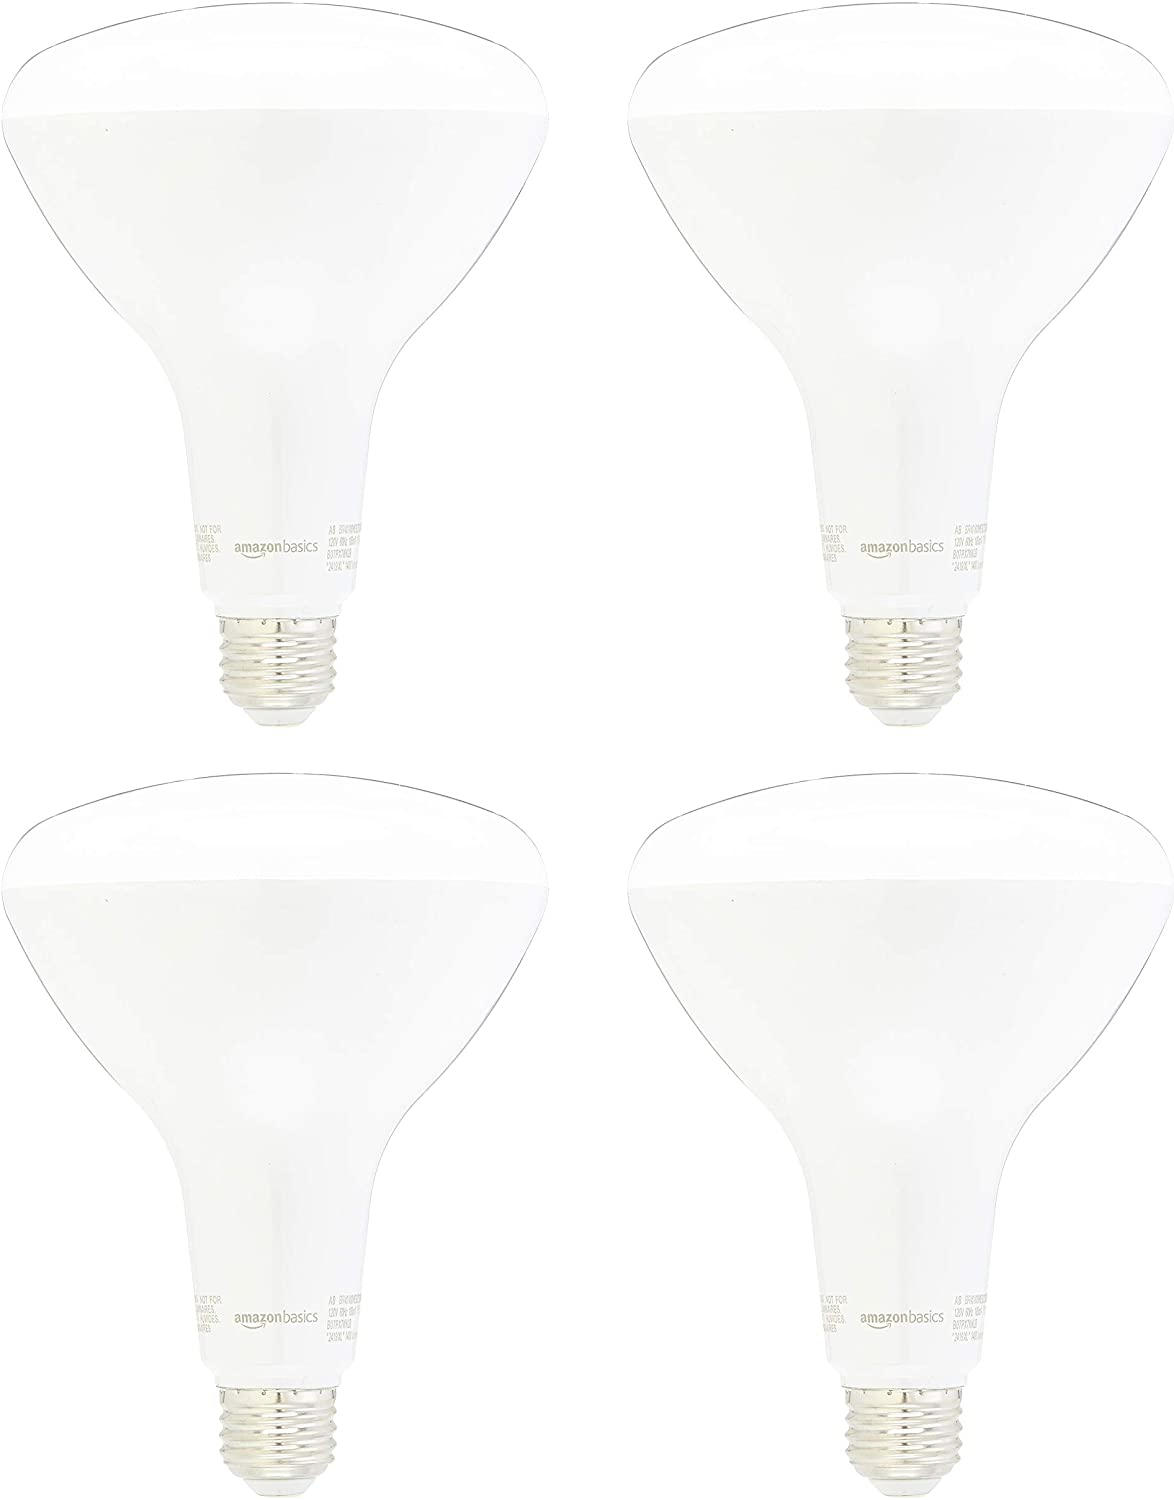 AmazonBasics 100 Watt Equivalent, Dimmable, BR40 LED Light Bulb | Soft White, 4-Pack